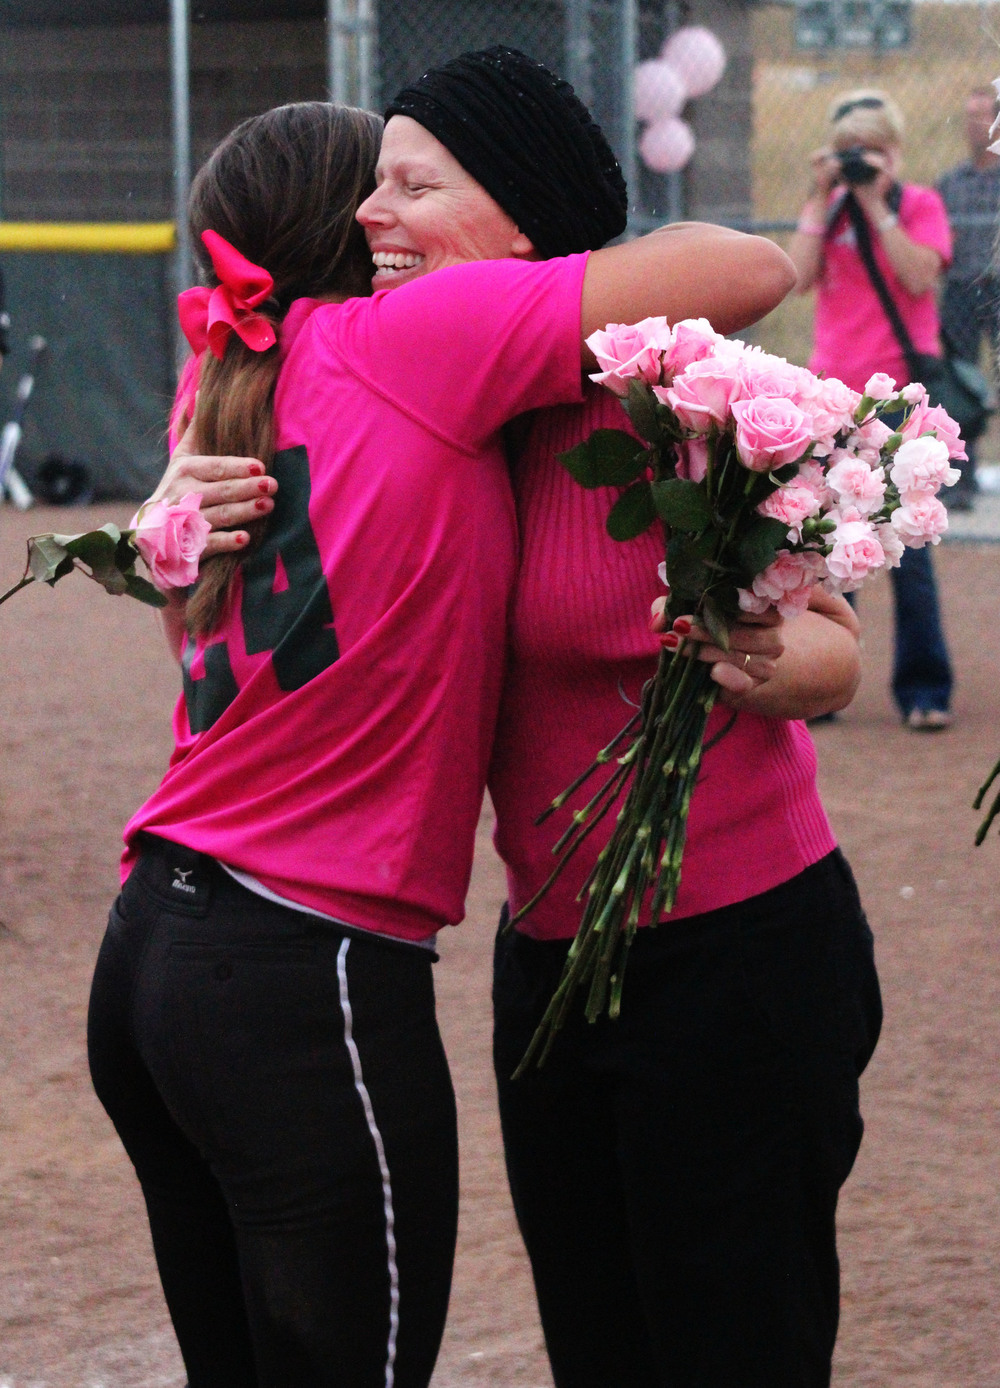 Susan Cash embraces senior Kayla Lewis during the annual softball Pink Game. Cash was diagnosed with stage 3 breast cancer earlier in the year and, after a series of remissions and complications, passed away in July of 2016.Published October 2015, Vista Now